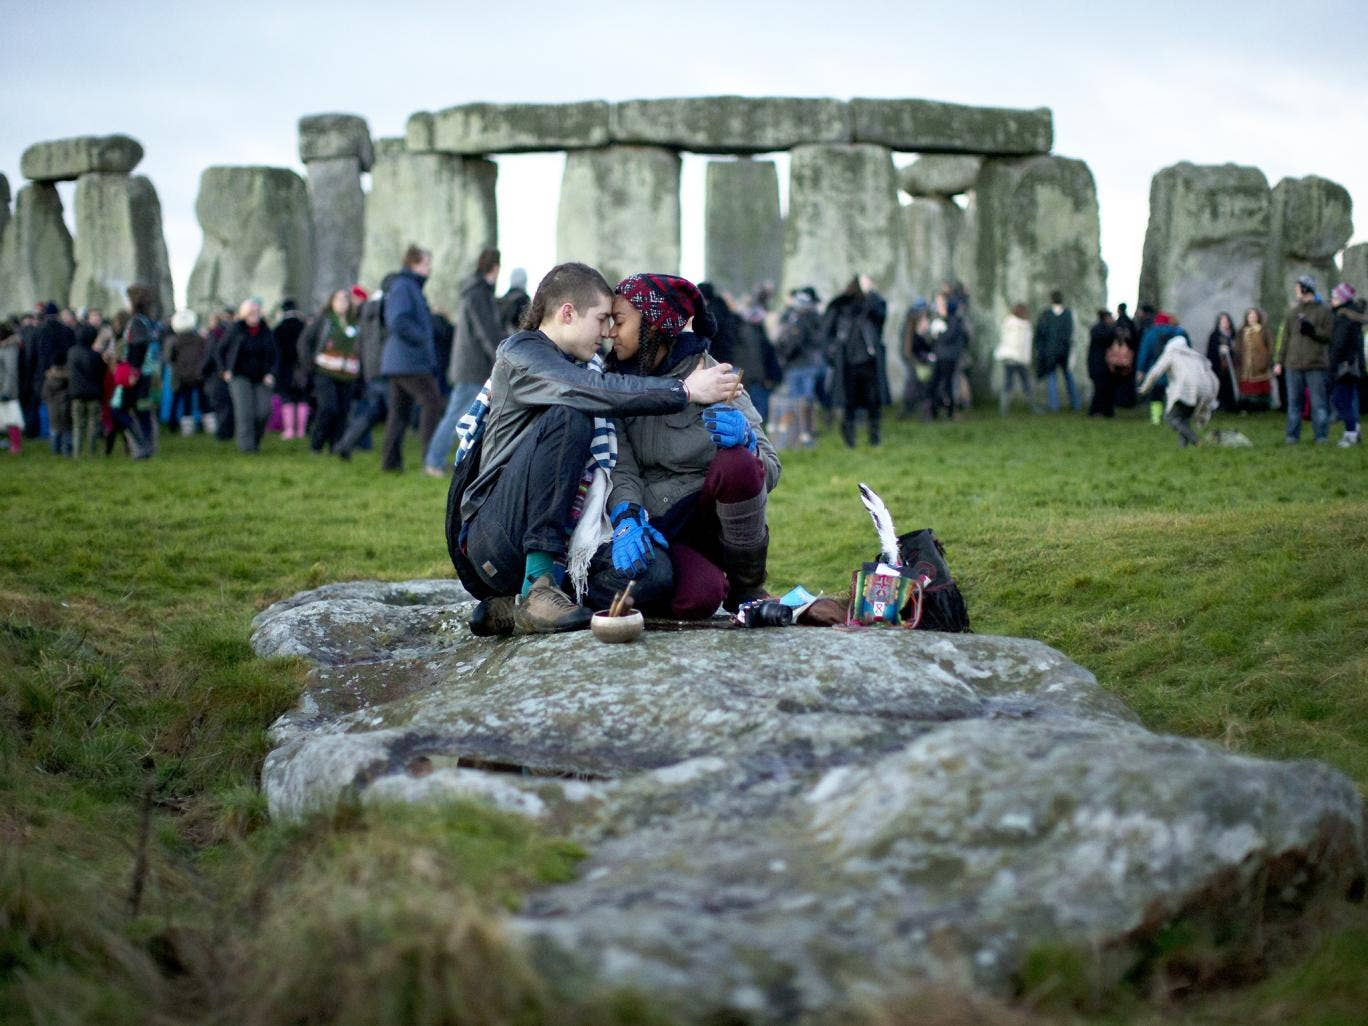 People embrace by the ancient stone circle of Stonehenge, in southern England, as access to the site is given to druids, New Age followers and members of the public on the annual Winter Solstice on 21 December 2012 AP Photo/Matt Dunham